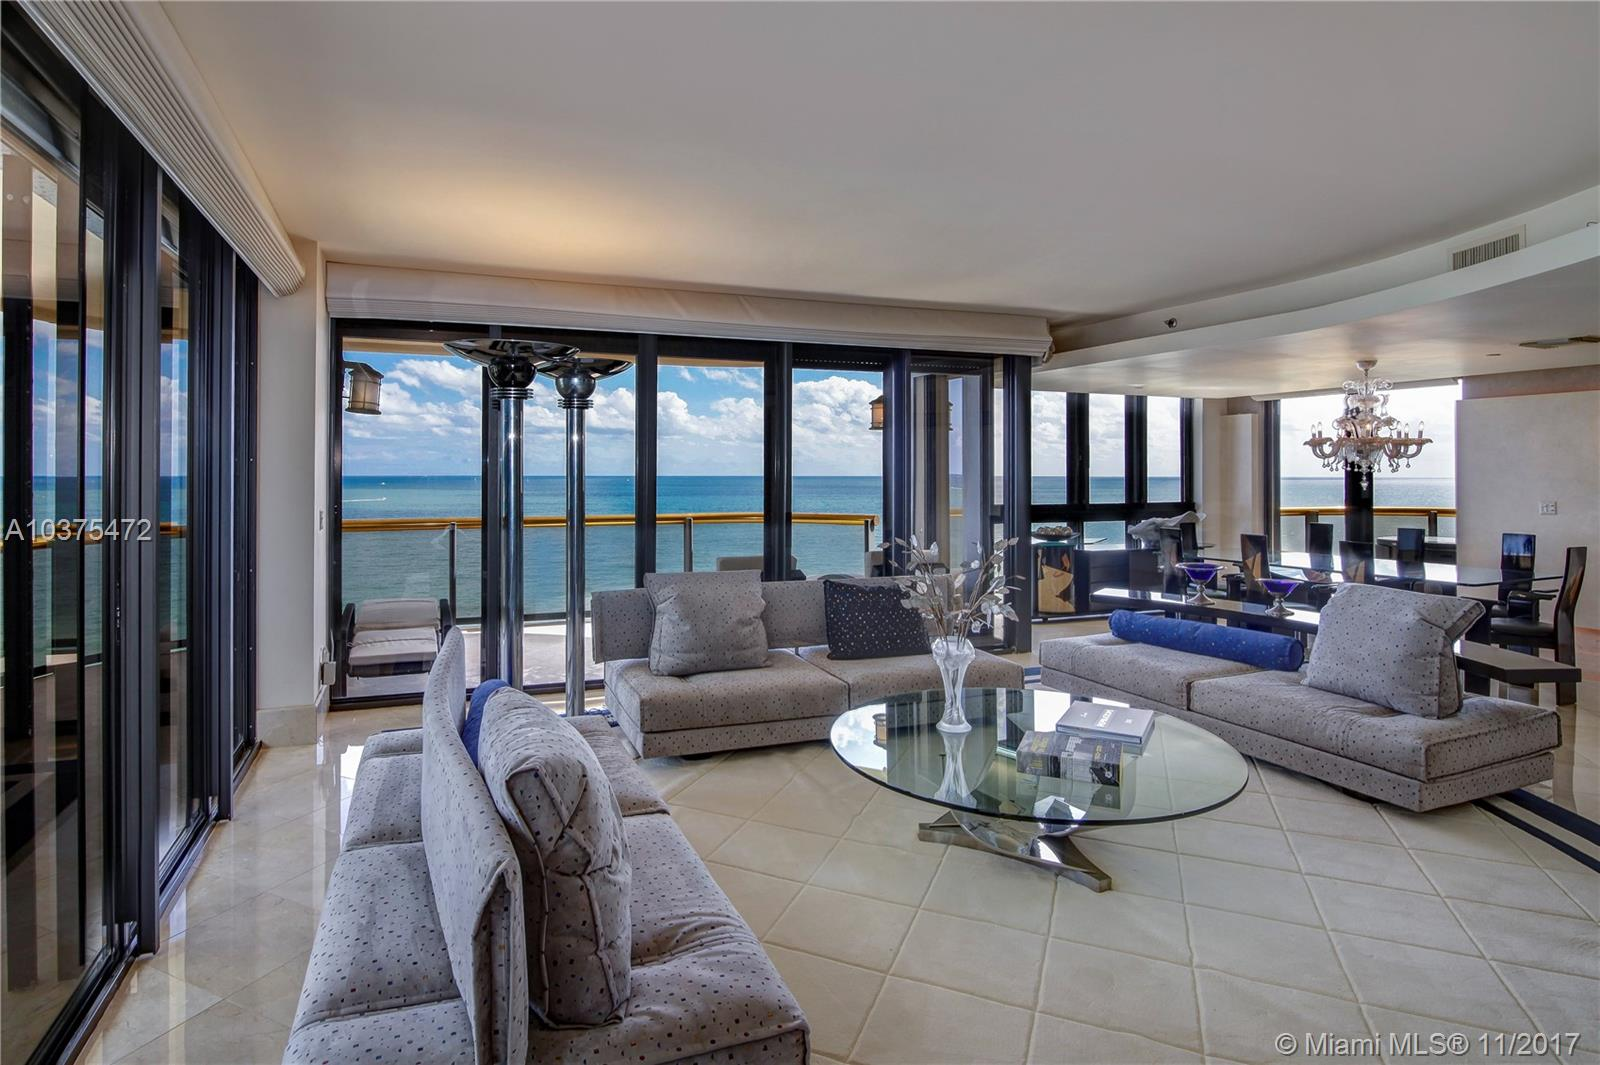 Breathtaking Direct Ocean Views Are A Signature Feature Of This North- East Corner Residence Nestled On The 11 Floor Of The Premier Ocean Front Bal Harbour Tower. Three Terraces Perfectly Appointed To Relax And Enjoy Spectacular Beach And Ocean Panorama. Accessed By Private Elevator This 3, 500 Sq Ft Apartment Features 2 Bed, 4.5 Bath Plus Den Which May Be Used As Convertible 3Rd Bedroom With Murphy Bed. Conveniently Separated Staff Quarters. Spacious Master Suite With His And Hers Marble Adorned Baths And Two Large Walk Ins Closets. Marble And Parquet Floors. A Choice Location Building Within Walking Distance To Bal Harbour Shops Offers Top-Notch Services Including Renowned Private Restaurant, Concierge, Pool & Beach Service, Fitness & Valet.